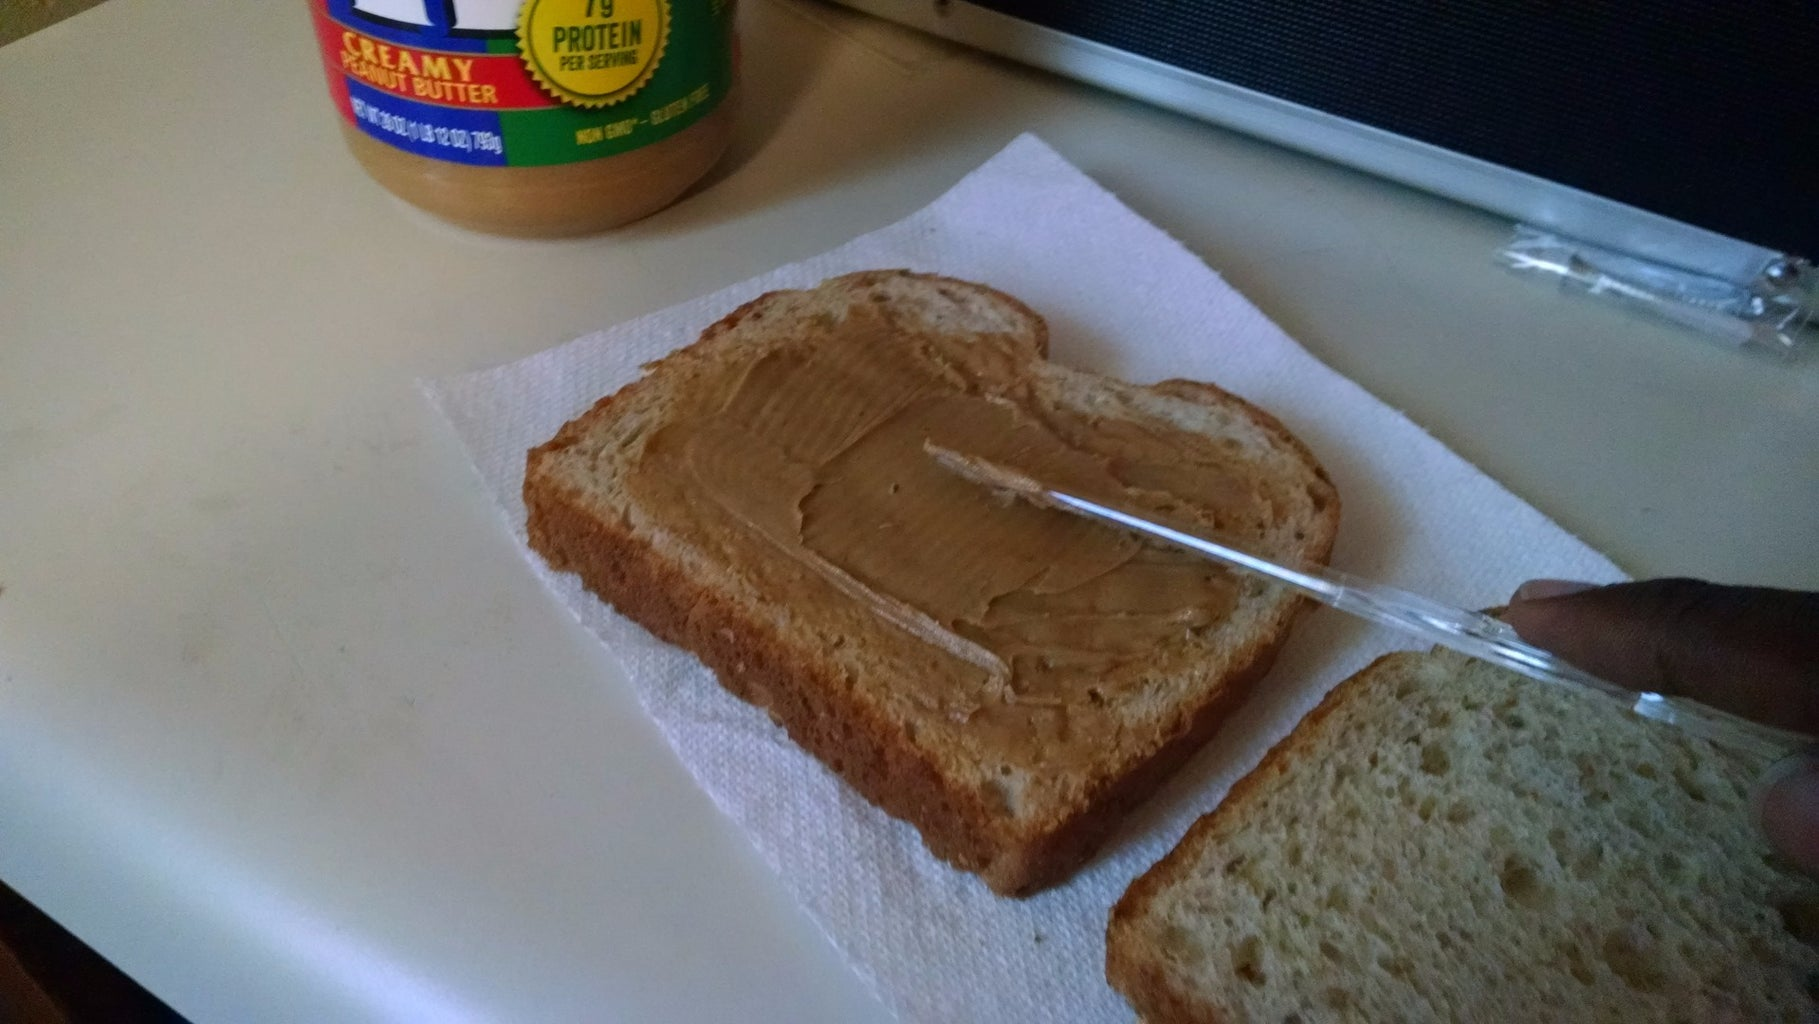 The Peanut Butter